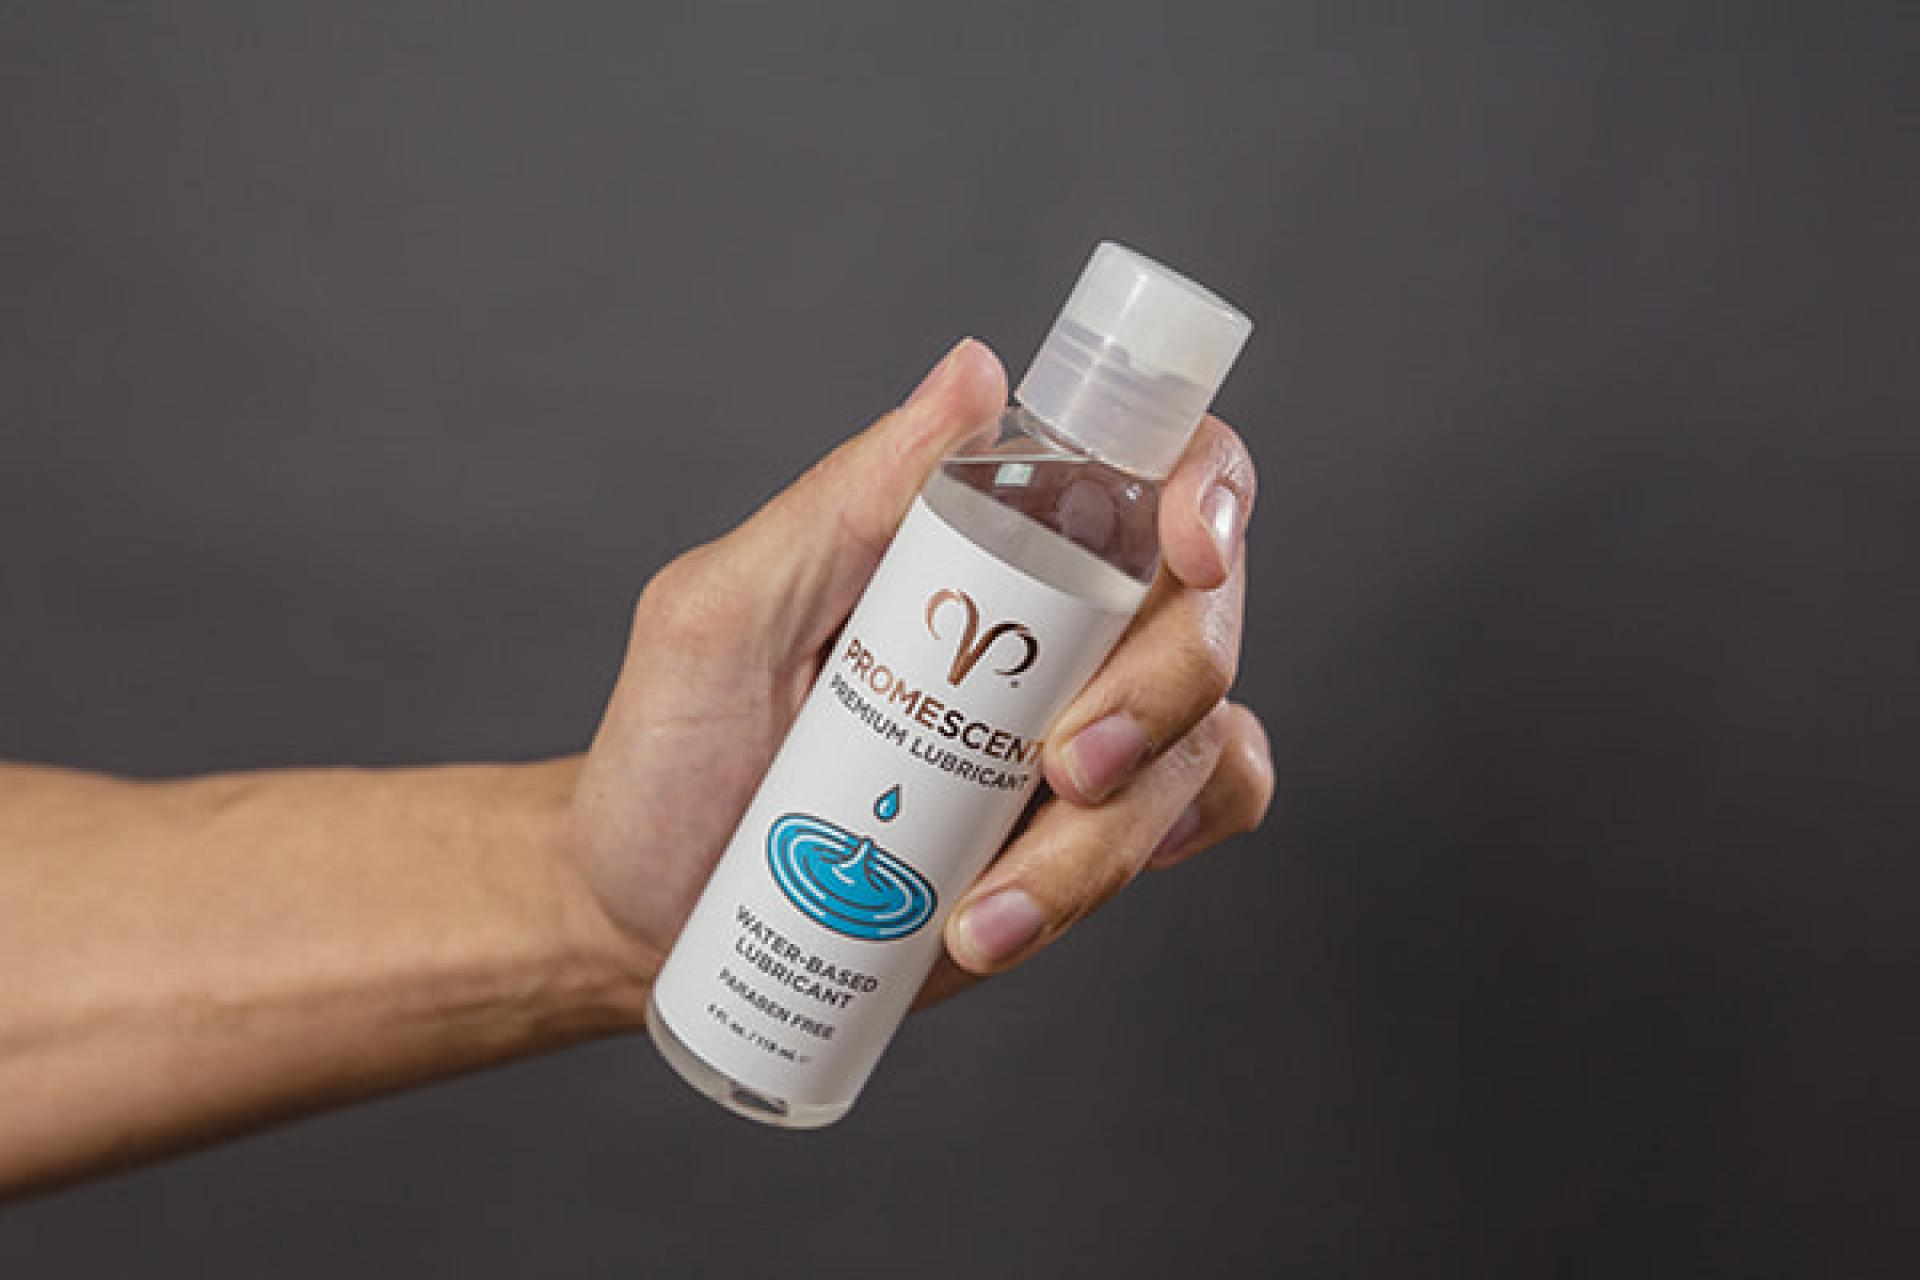 Promescent Water-Based Lubricant